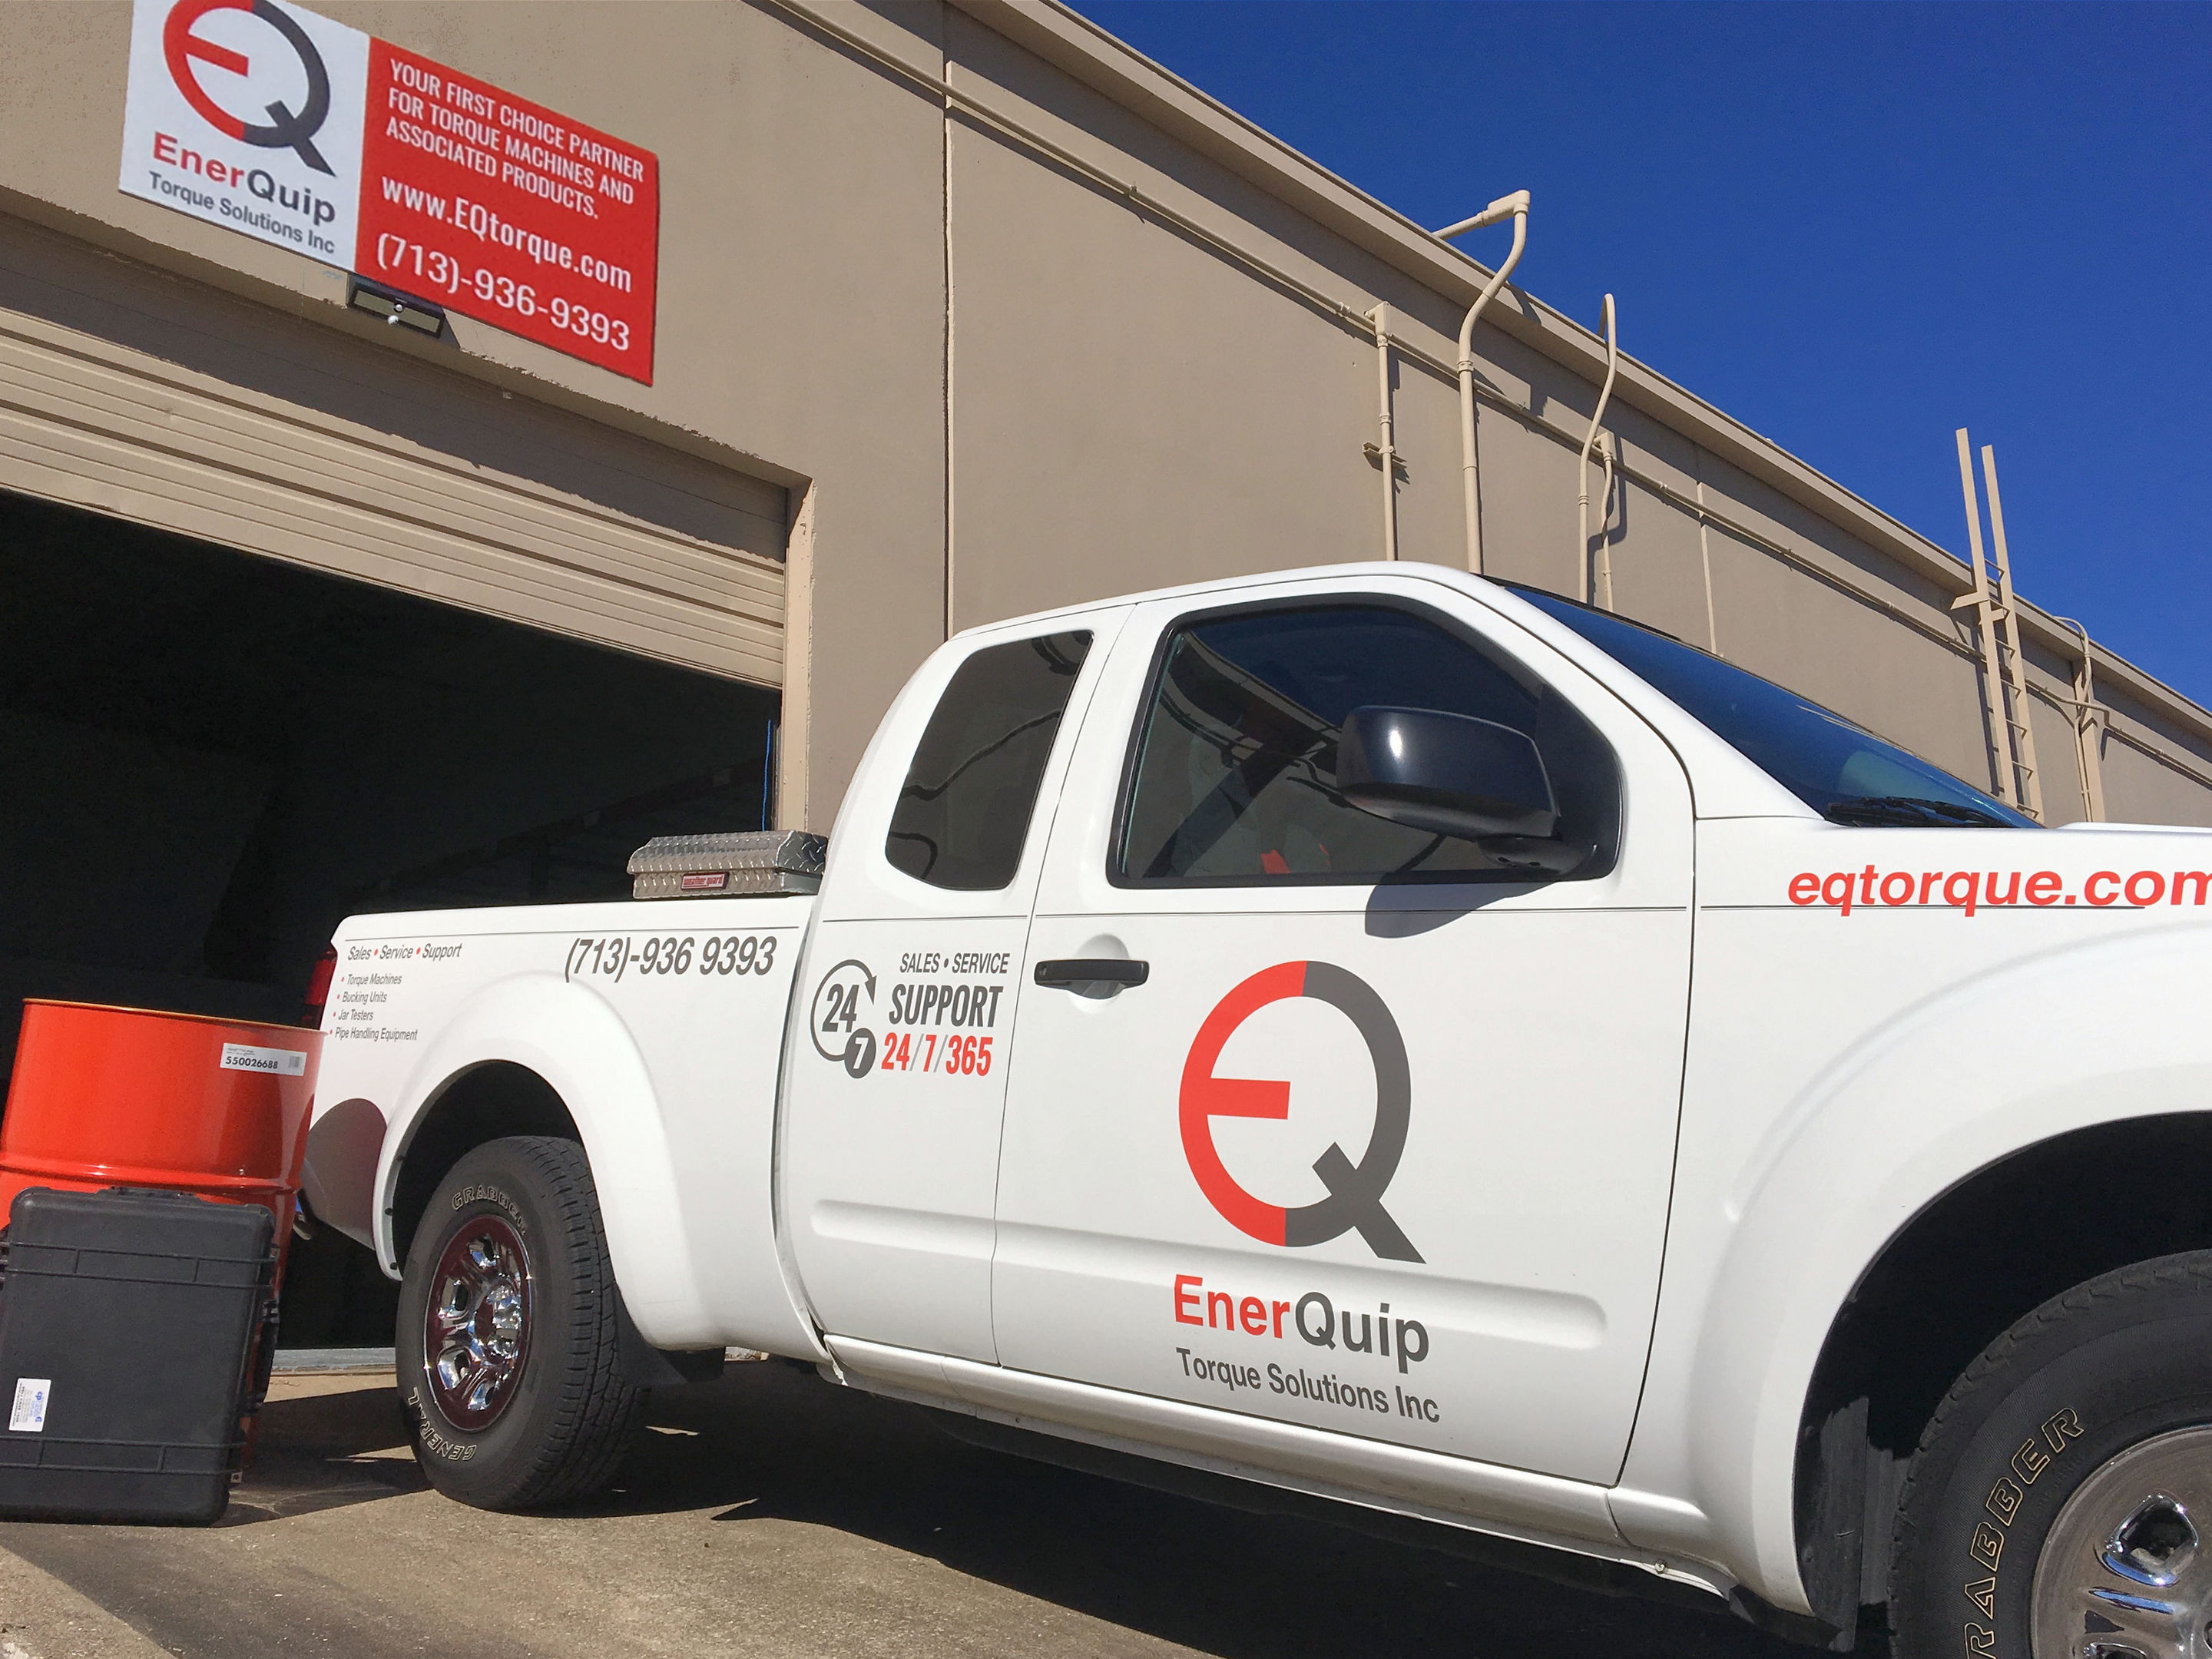 An EnerQuip branded vehicle at the firm's Houston base.